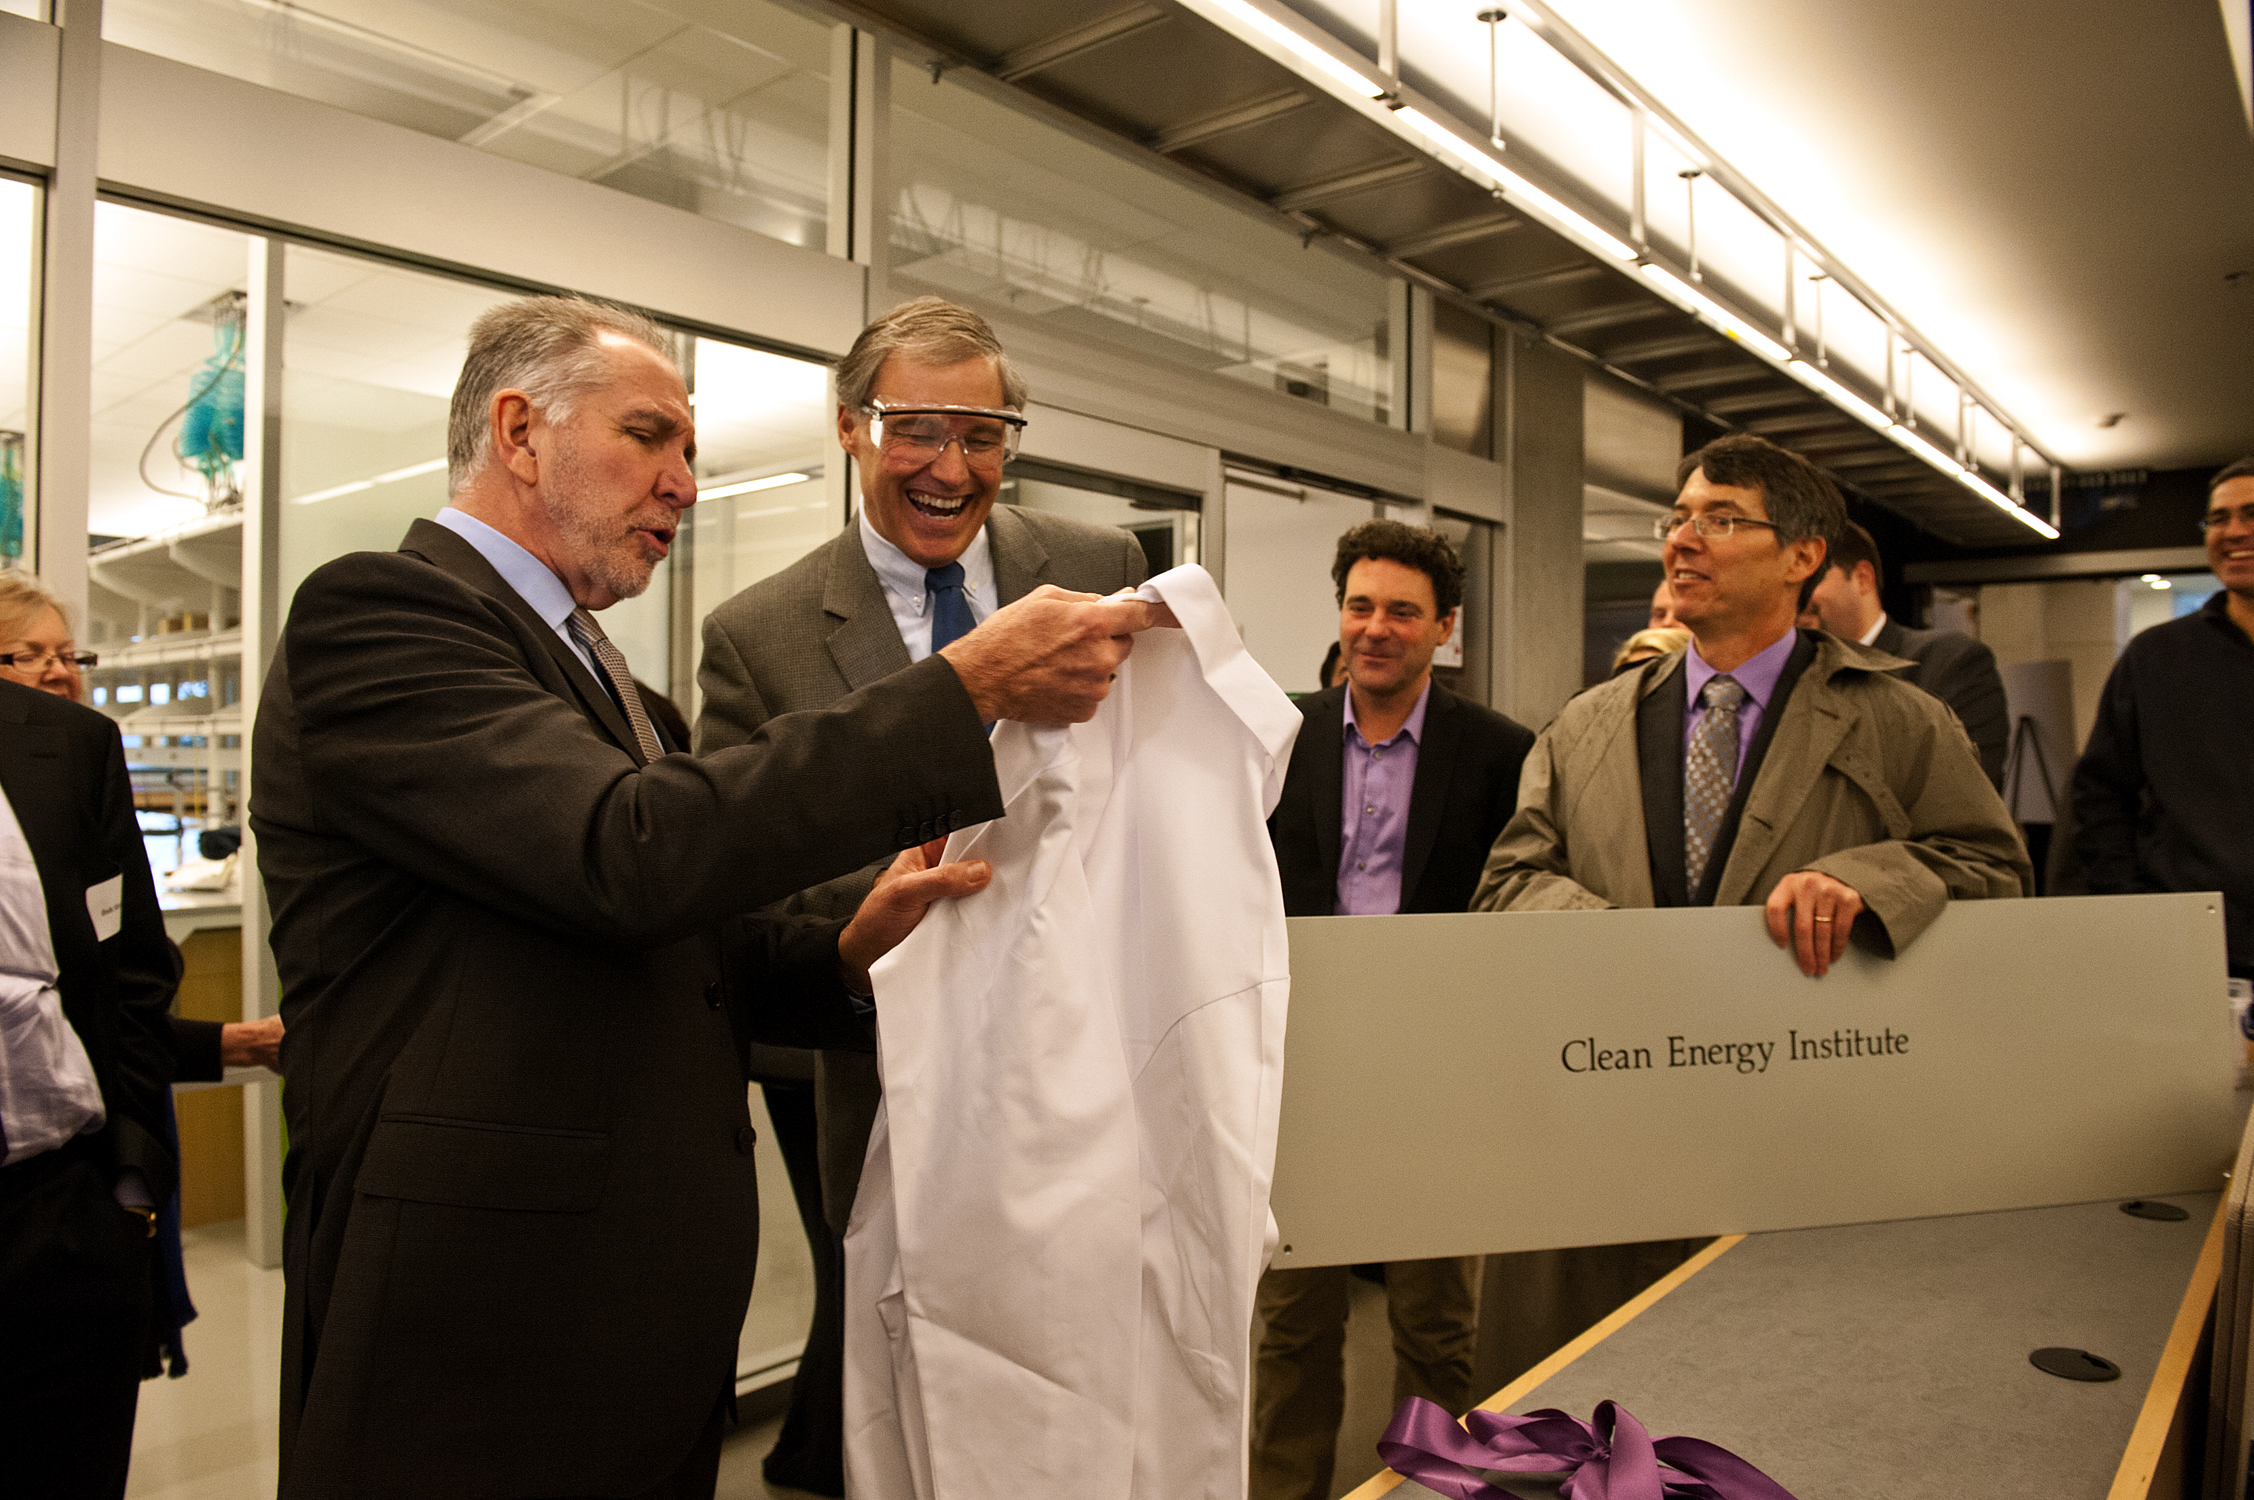 UW President Michael Young presents Gov. Jay Inslee with a lab coat at the launch of the Clean Energy Institute on Dec. 12.